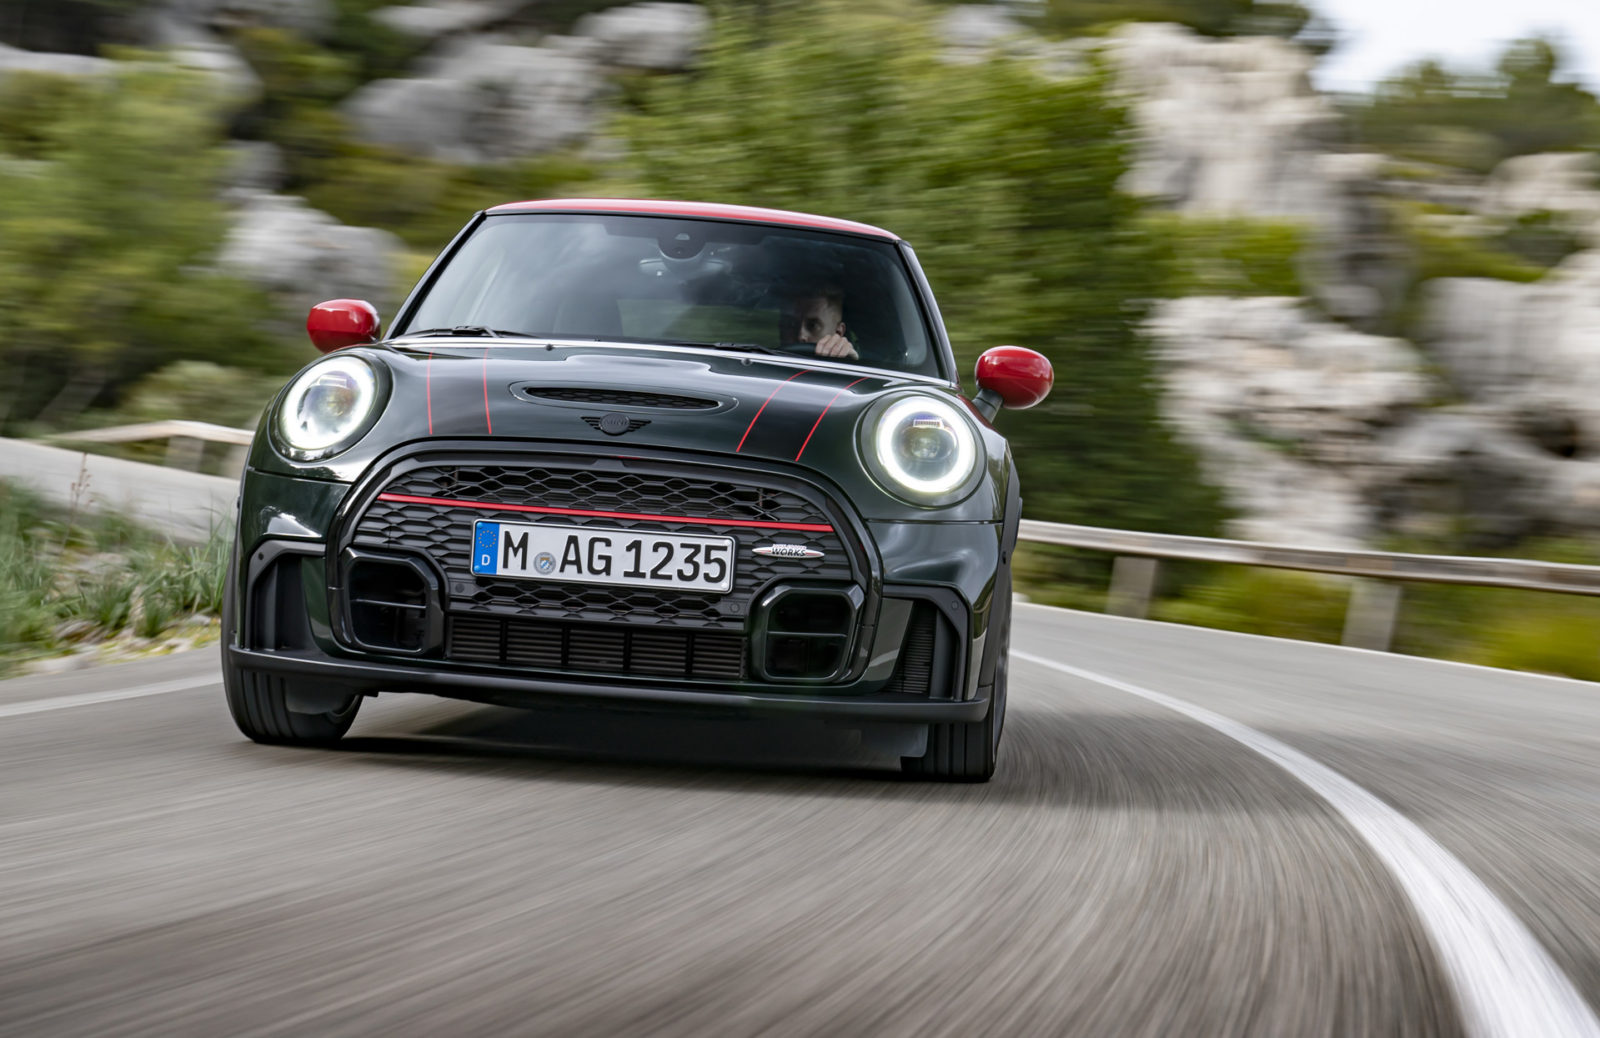 preview:-2022-mini-john-cooper-works-hardtop-arrives-with-new-look,-old-power